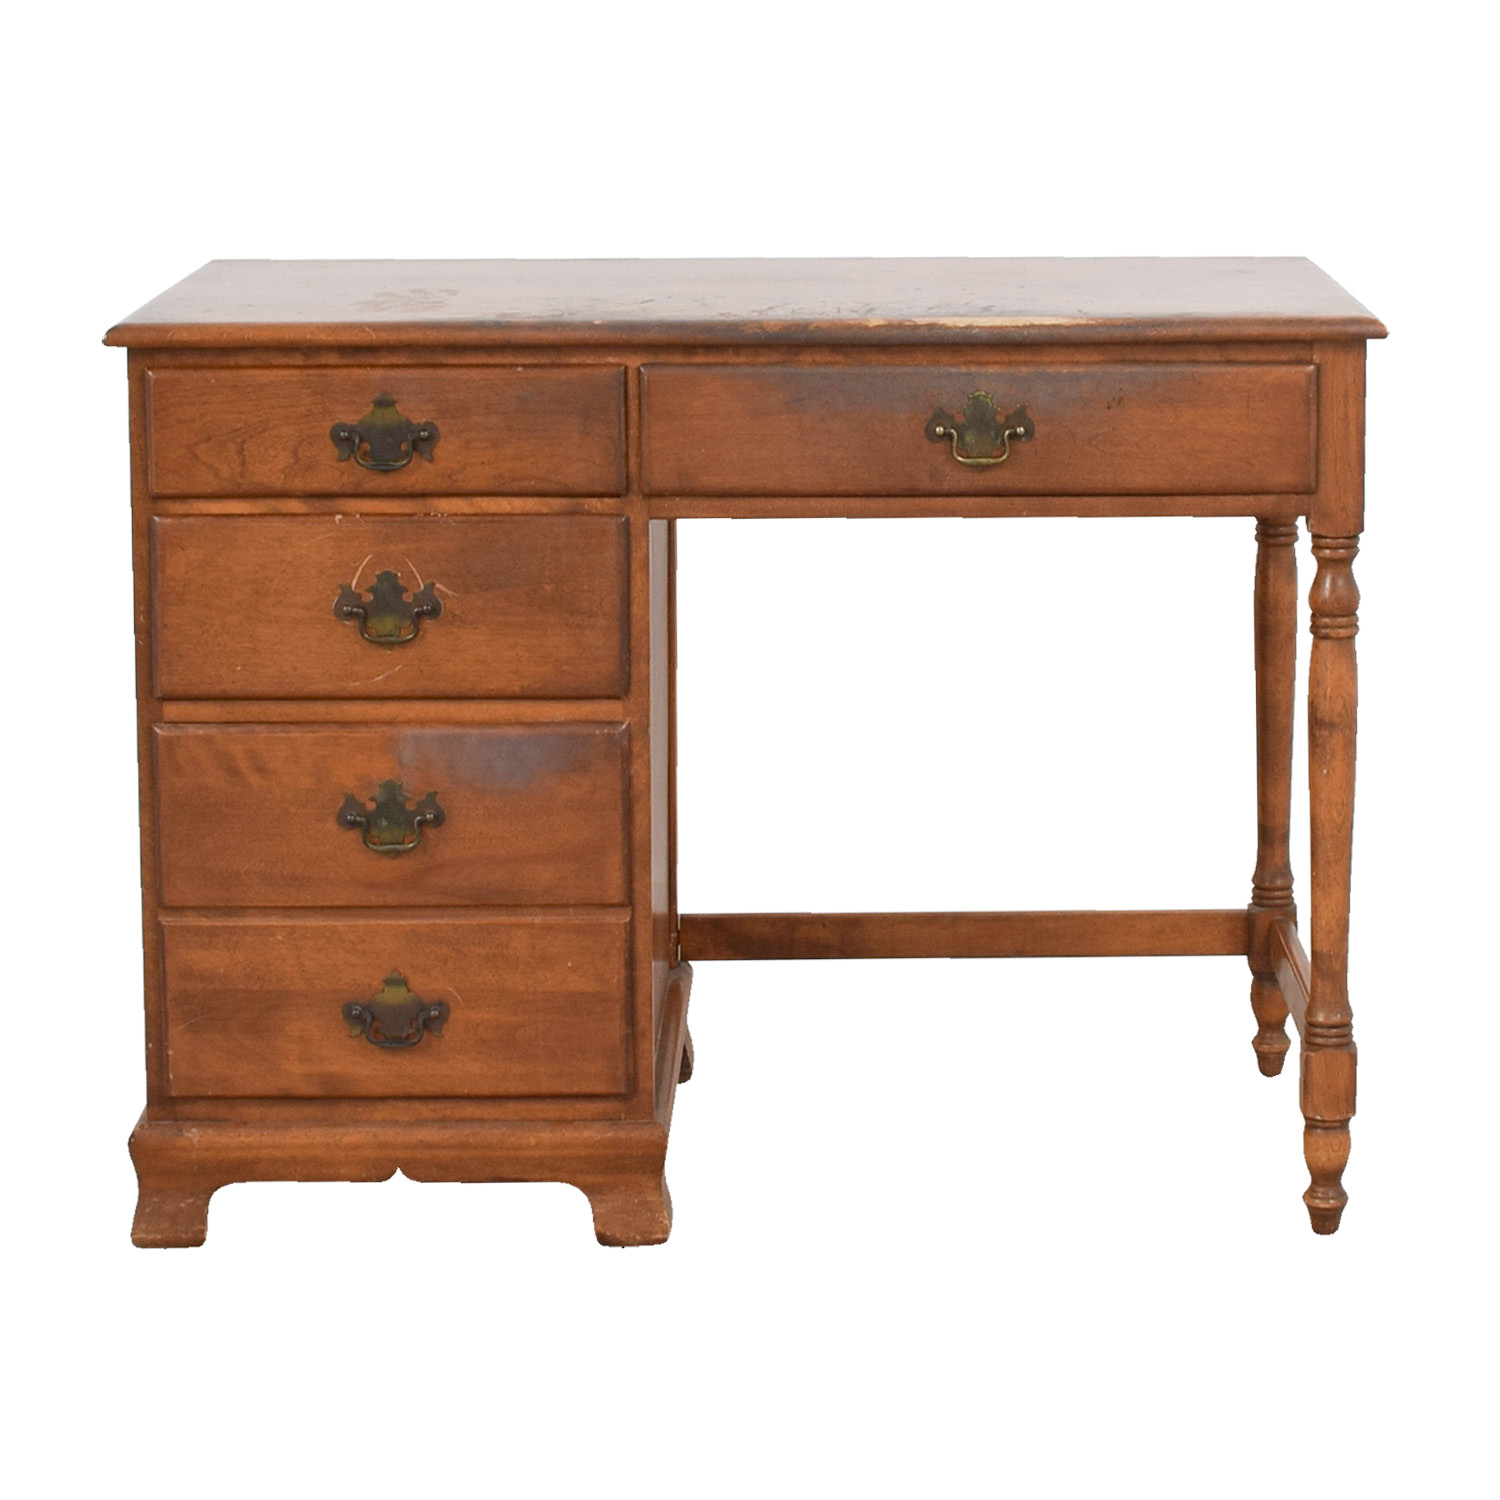 Ethan Allen Ethan Allen Vintage Baumritter Maple Wood Desk coupon